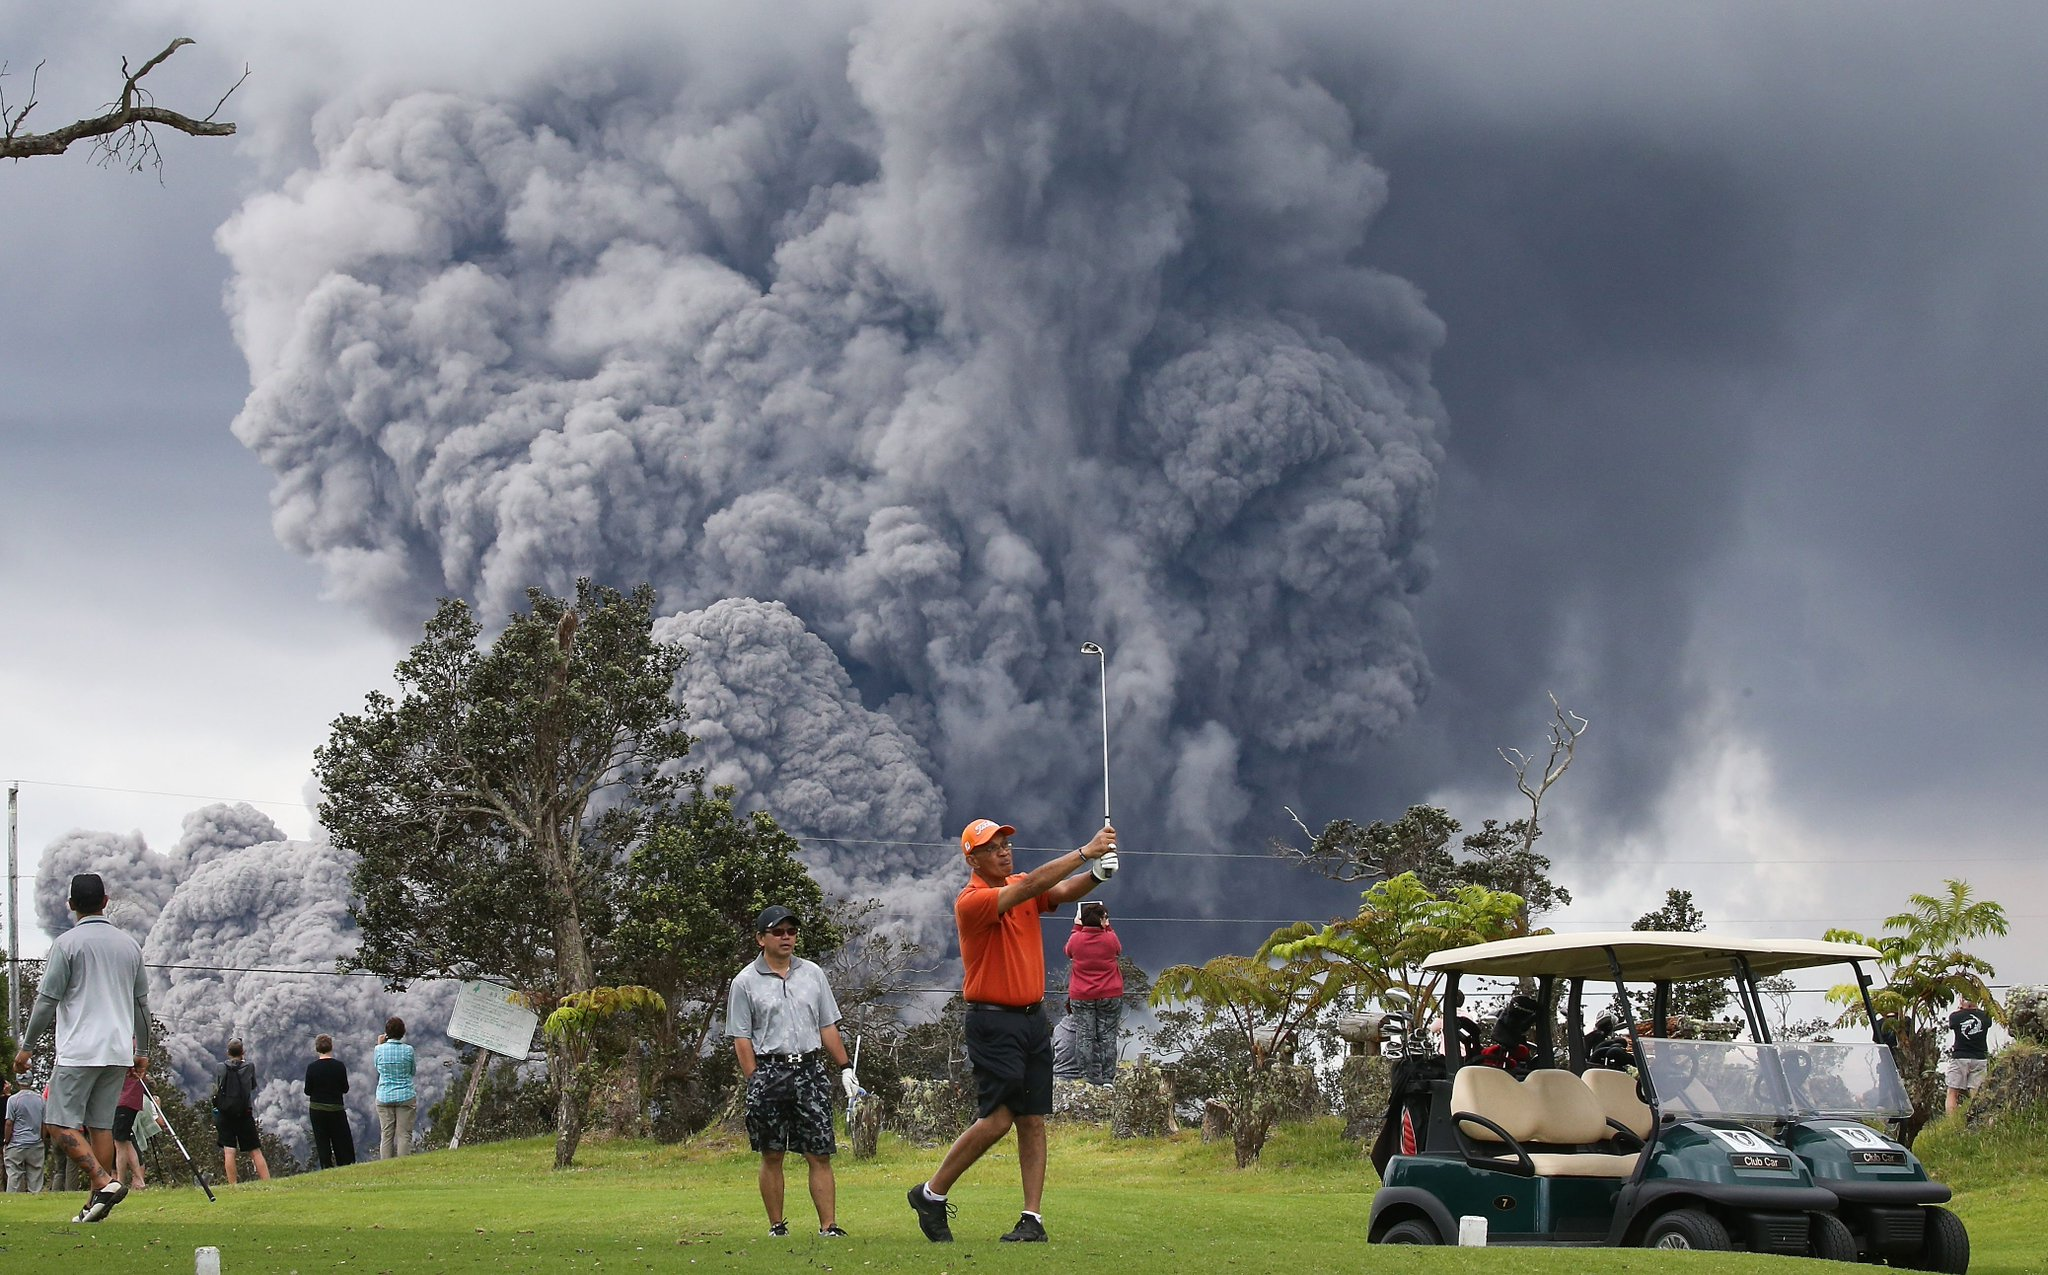 Unreal photo. People golf as an ash plume rises from the Kilauea volcano in Hawaii. (h/t @GettySport) https://t.co/zNaWUoPCMq